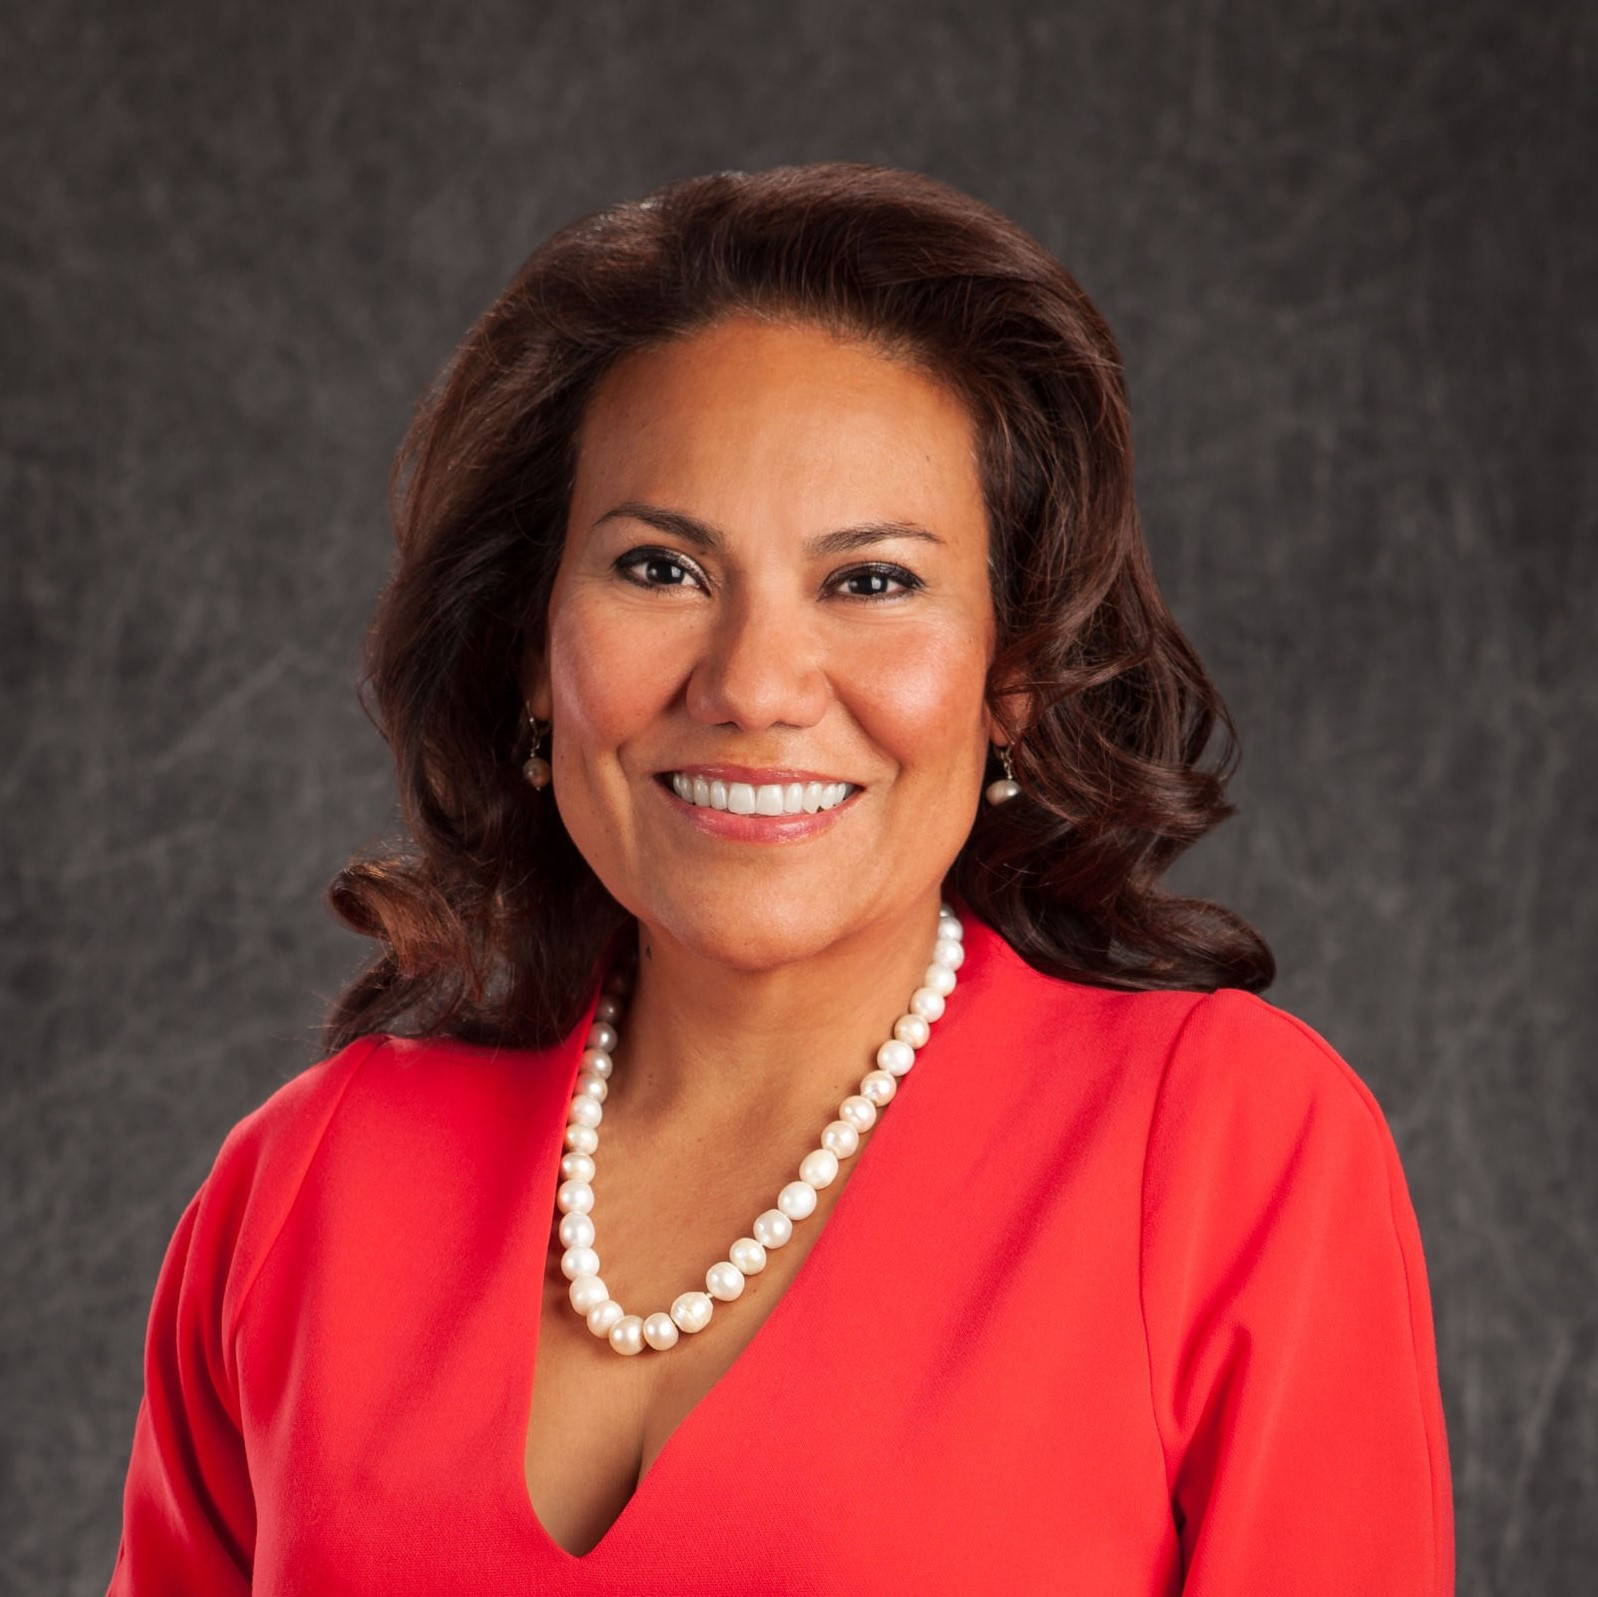 Representative Veronica Escobar